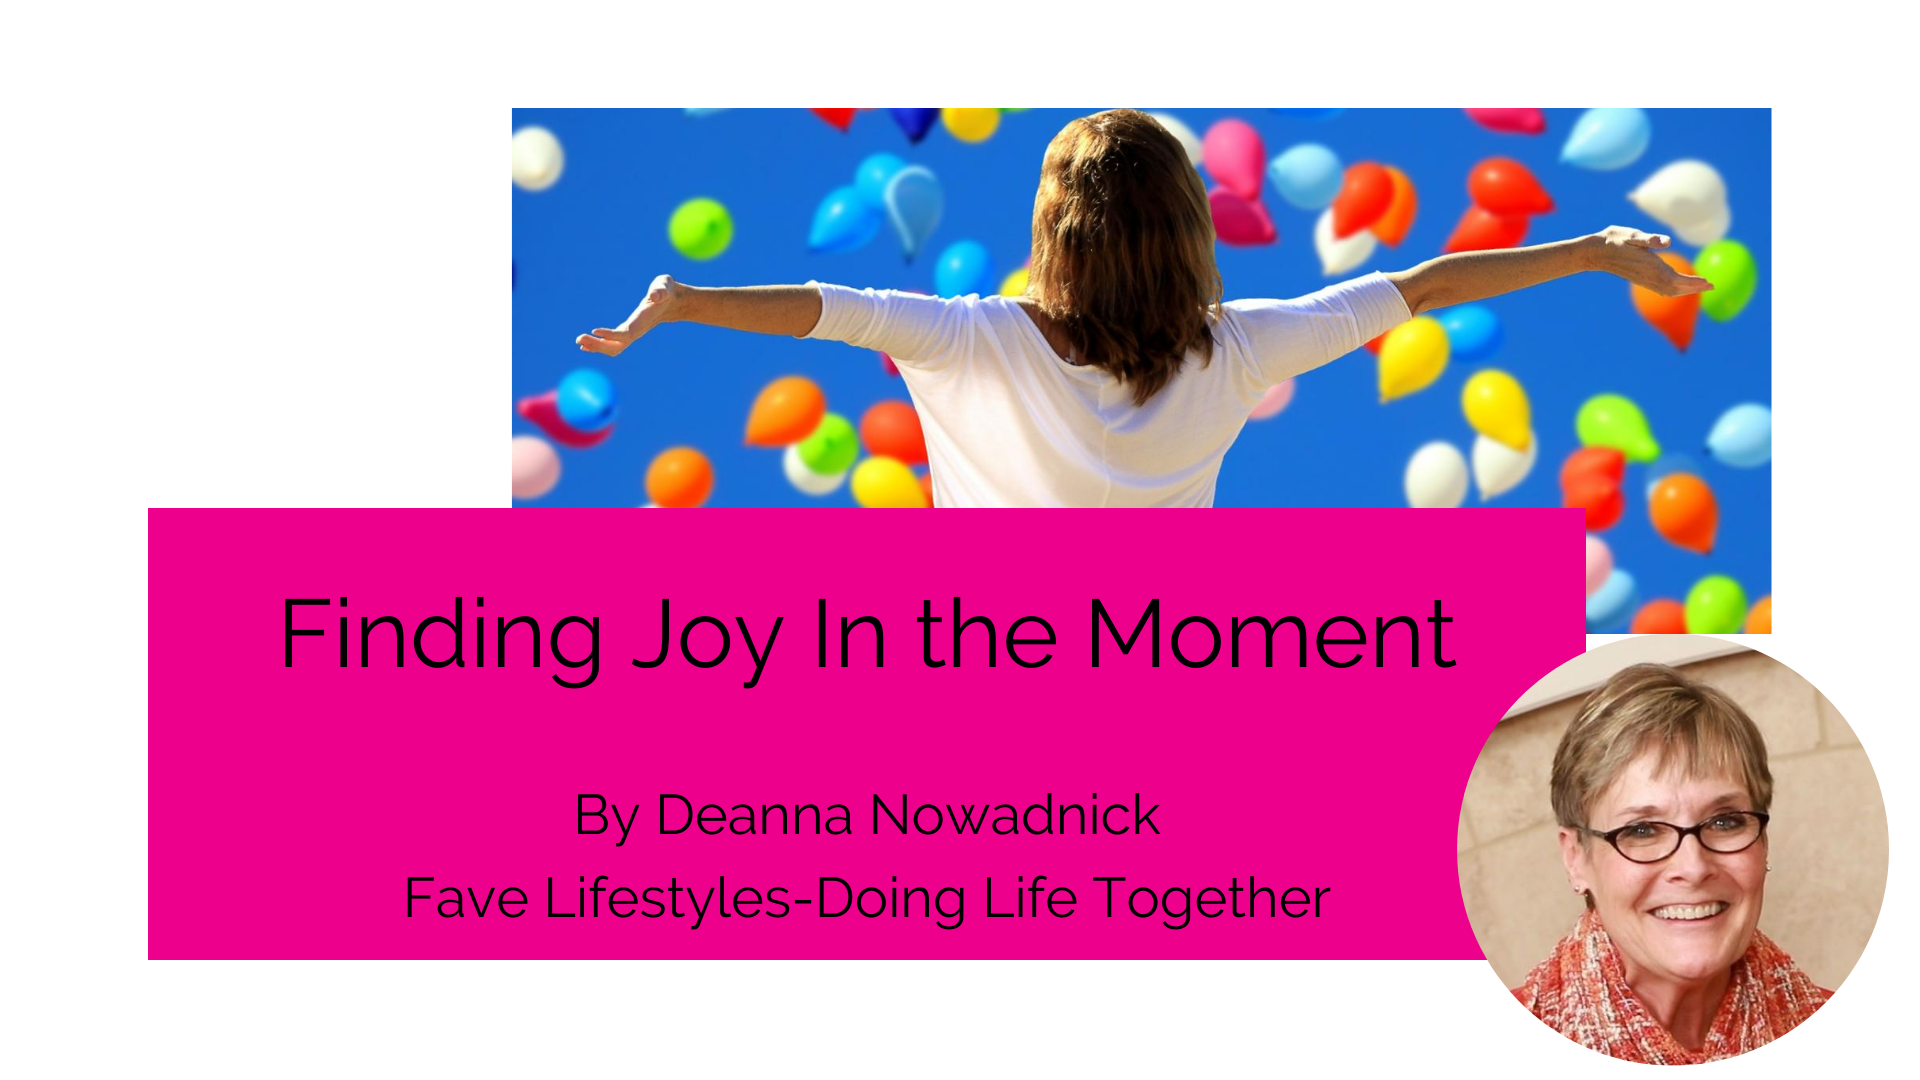 Finding Joy in the Moment